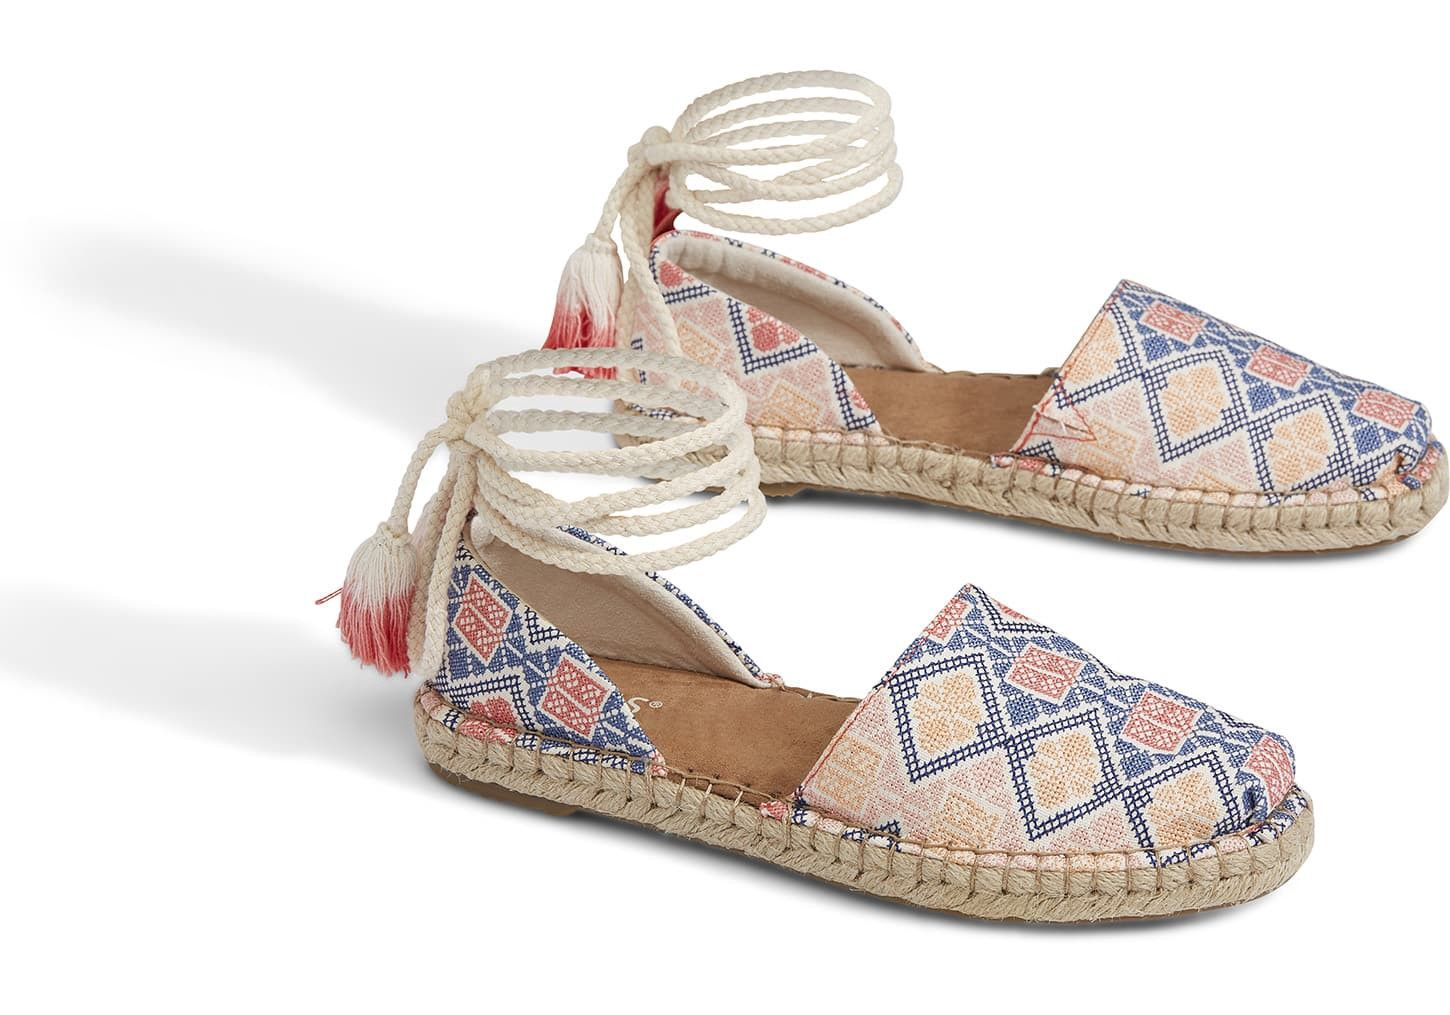 916dcb7d0ed Toms Geo Embroidered Women s Katalina Espadrilles Shoes - 11 ...